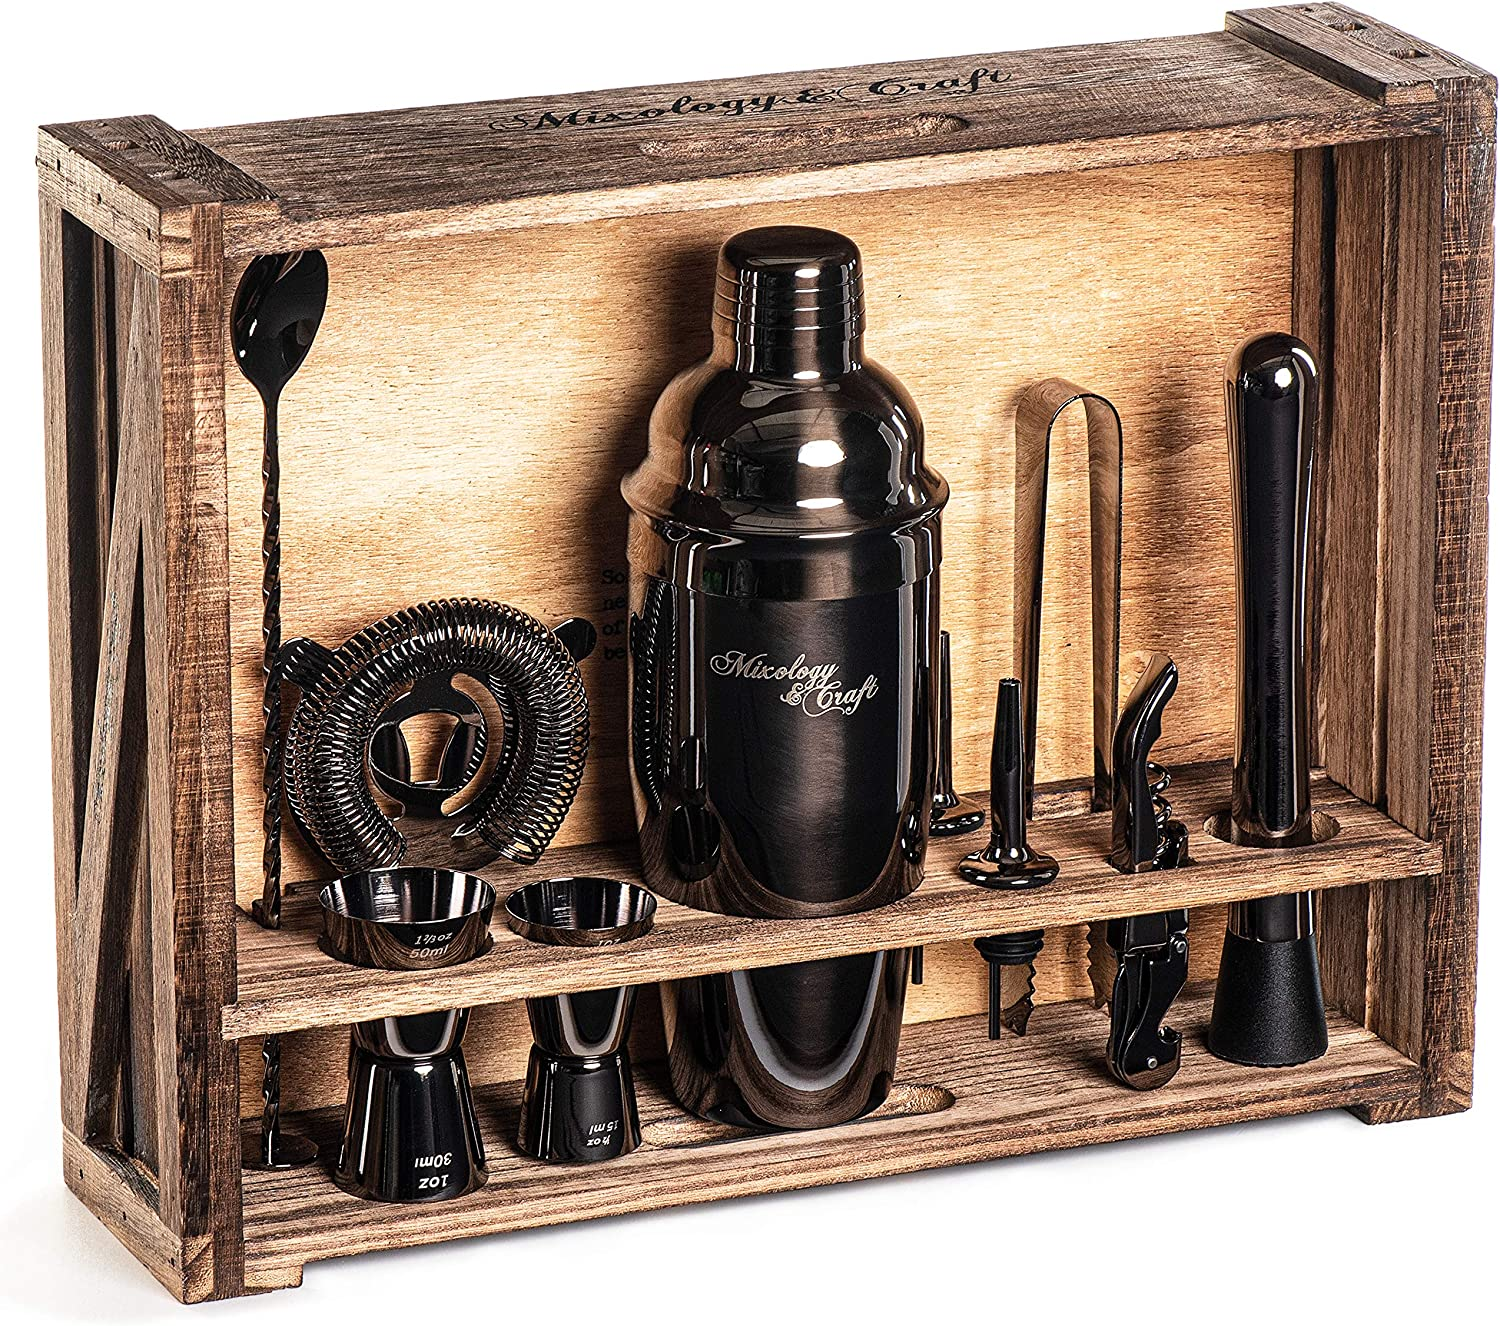 Mixology Bartender Kit: 11-Piece Black Bar Set Cocktail Shaker Set with Rustic Wood Stand | Perfect Home Bartending Kit with Gun Metal Bar Tools and Martini Shaker for Foolproof Drink Mixing